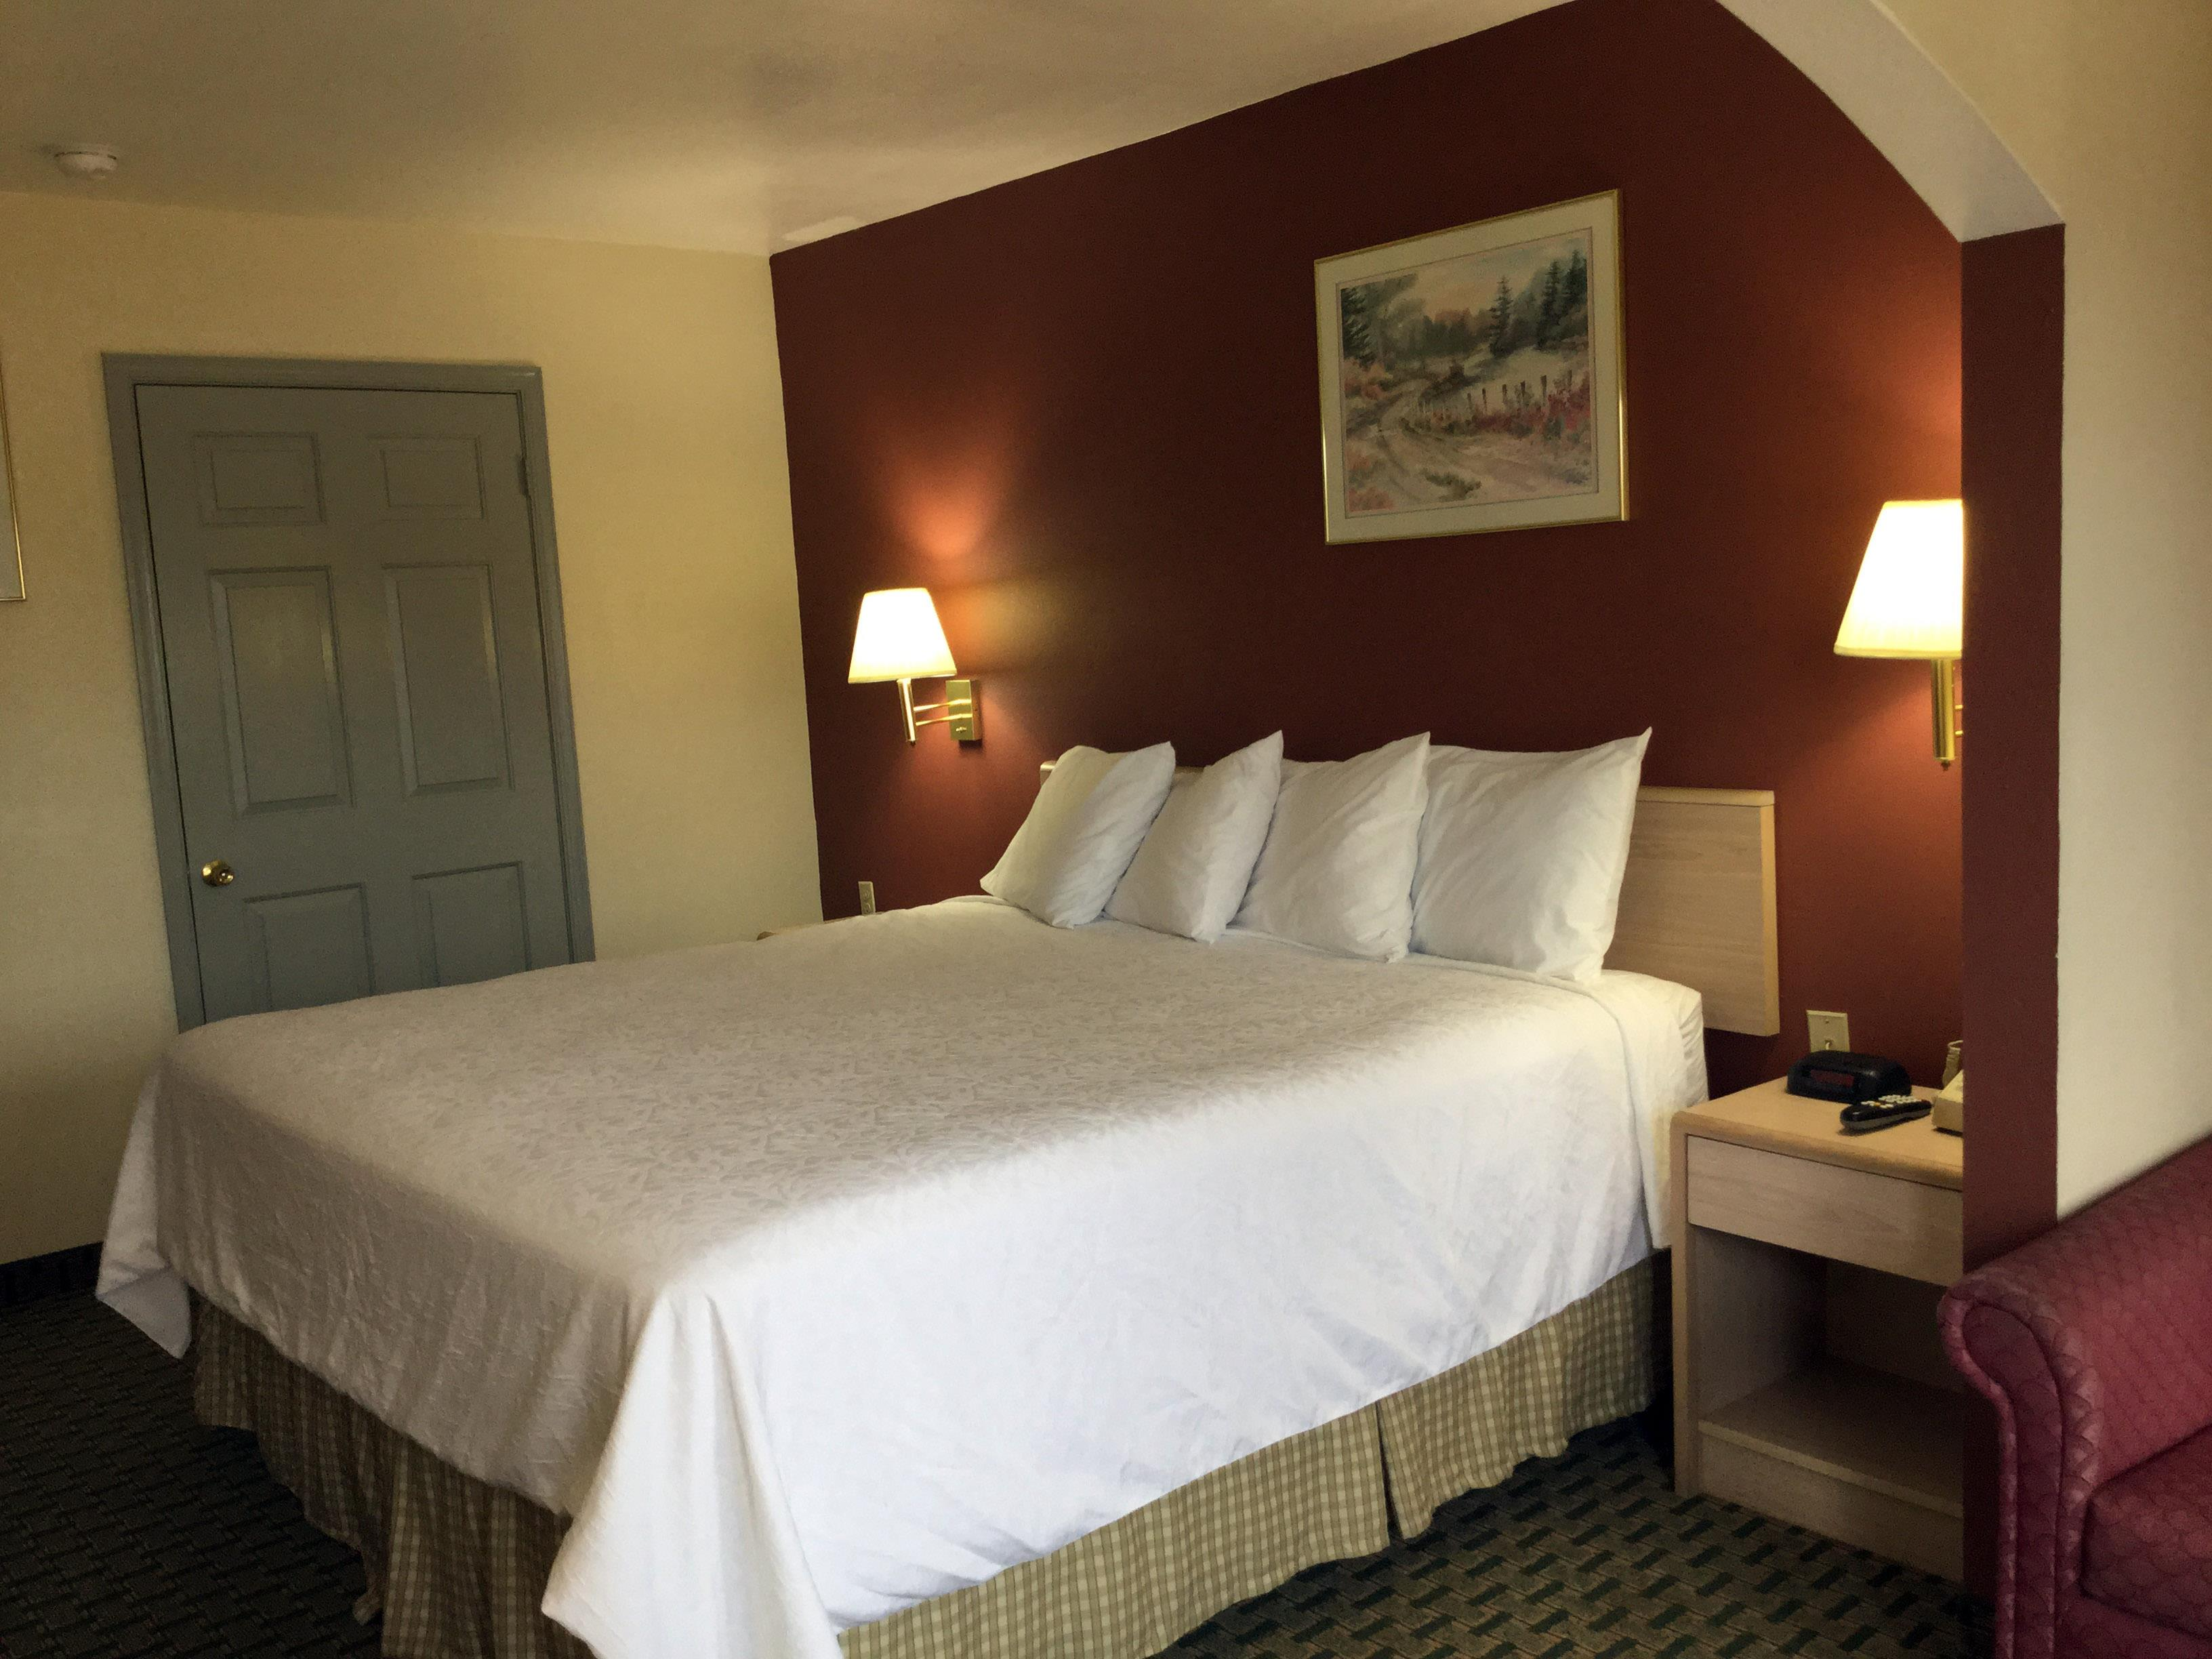 Americas best value inn cabot coupons near me in cabot for Americas best coupons